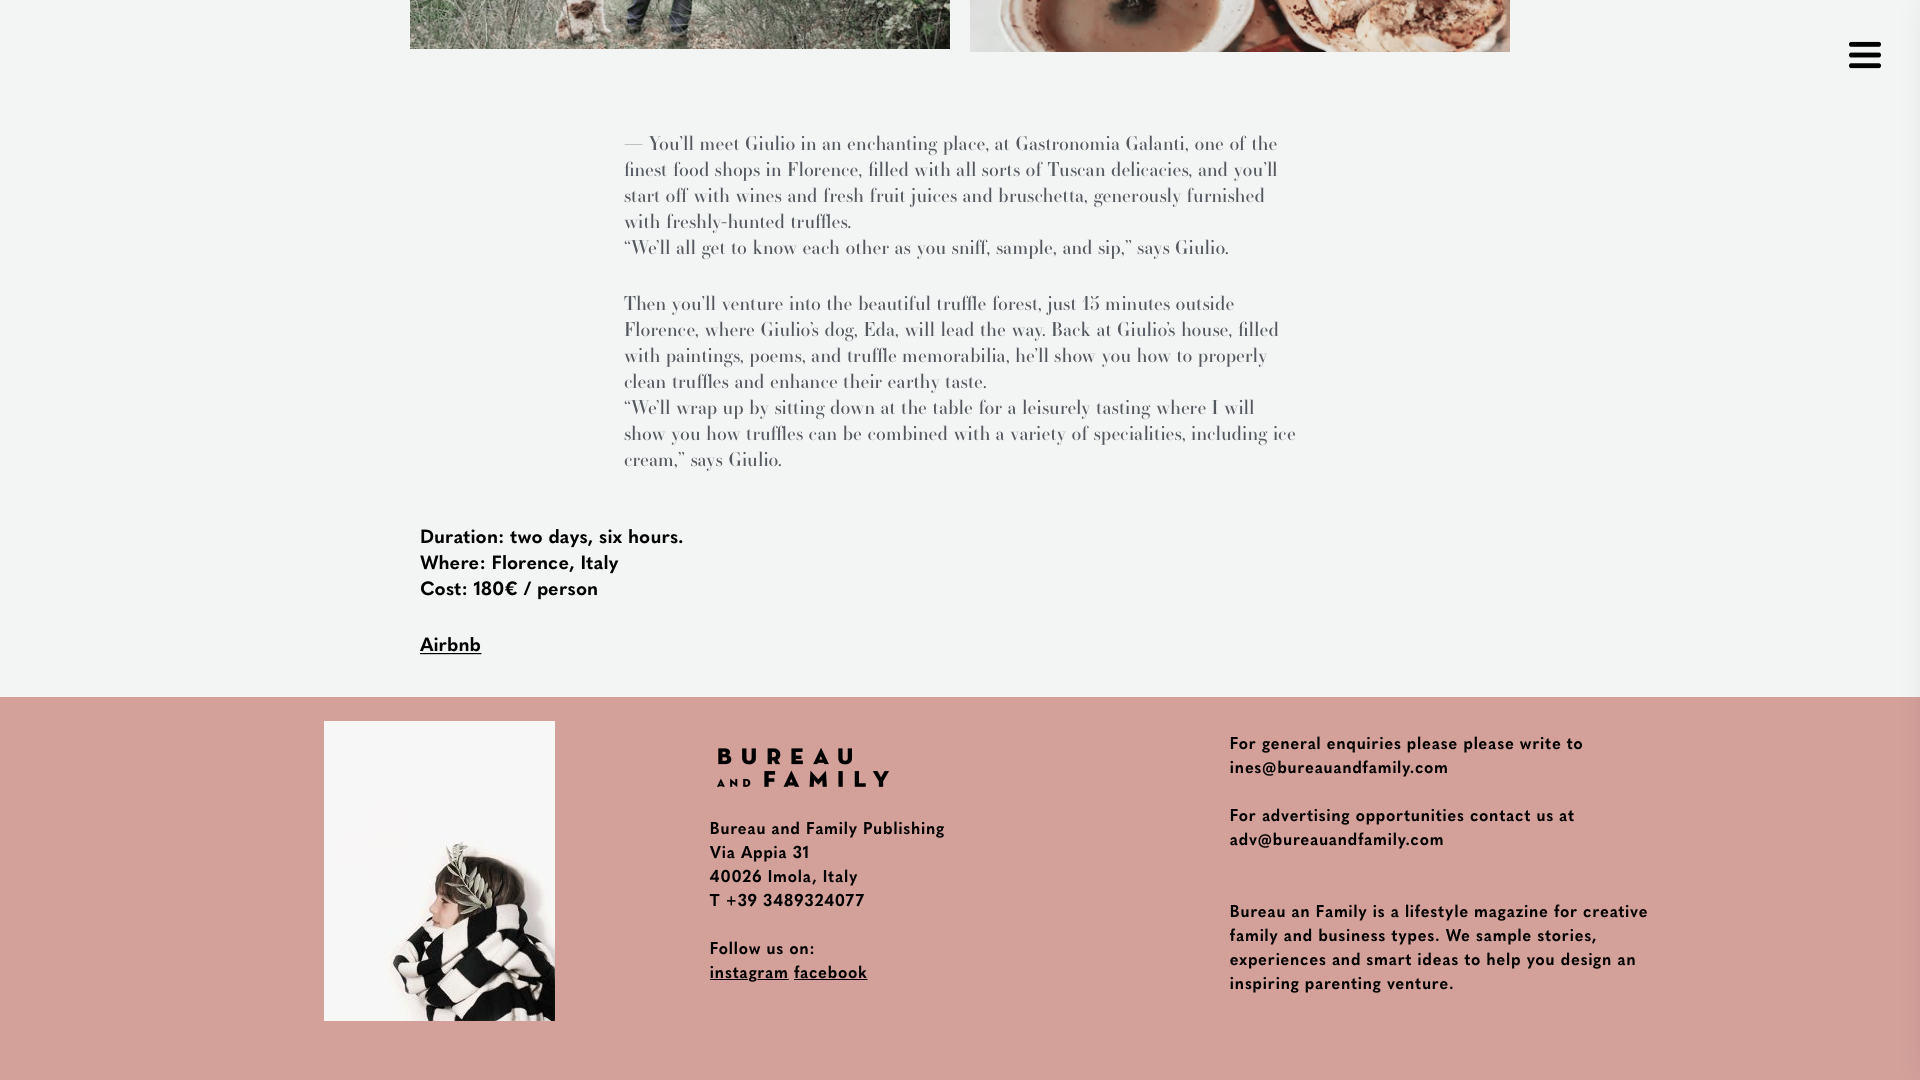 Bureau and Family website - Fonts In Use